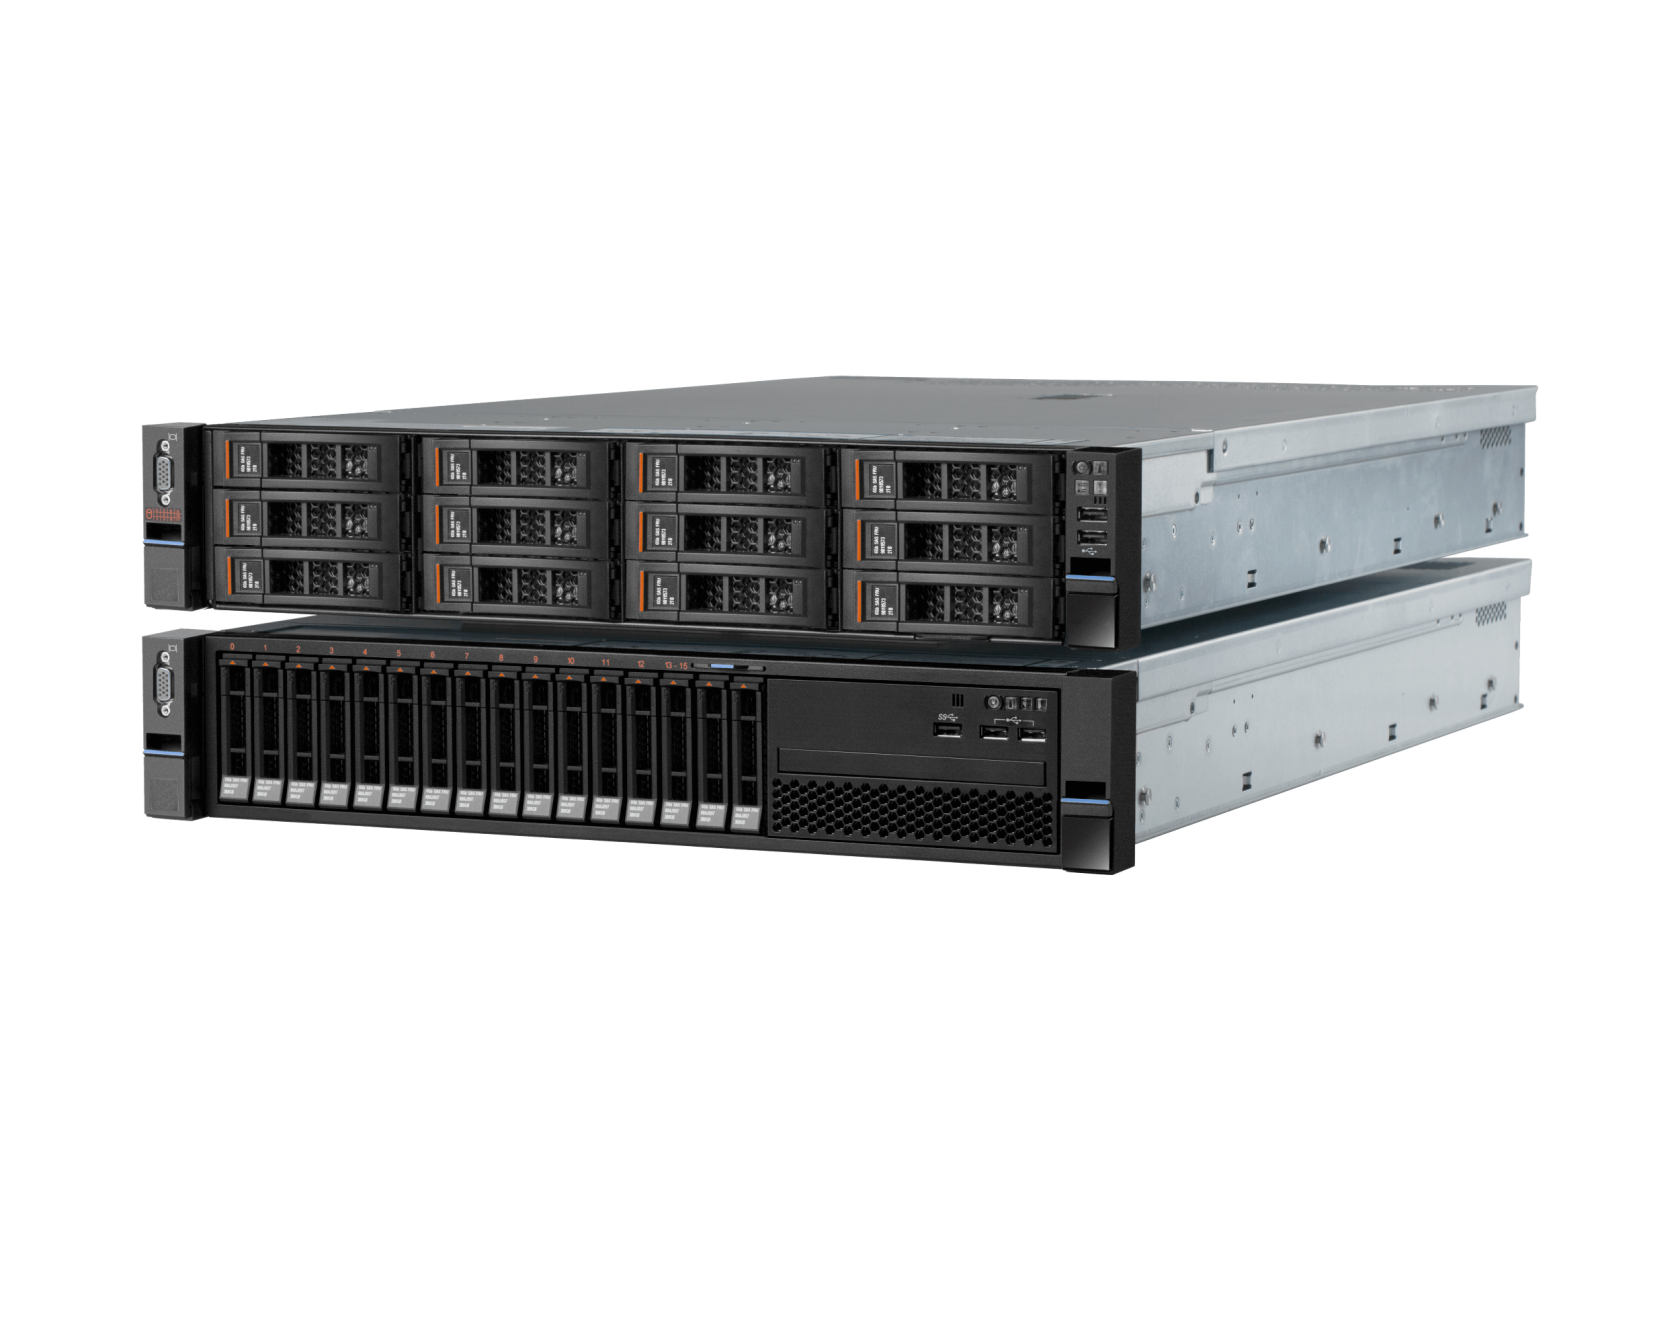 Ibm Hard System Dell Drives Computer Servers PNG Image